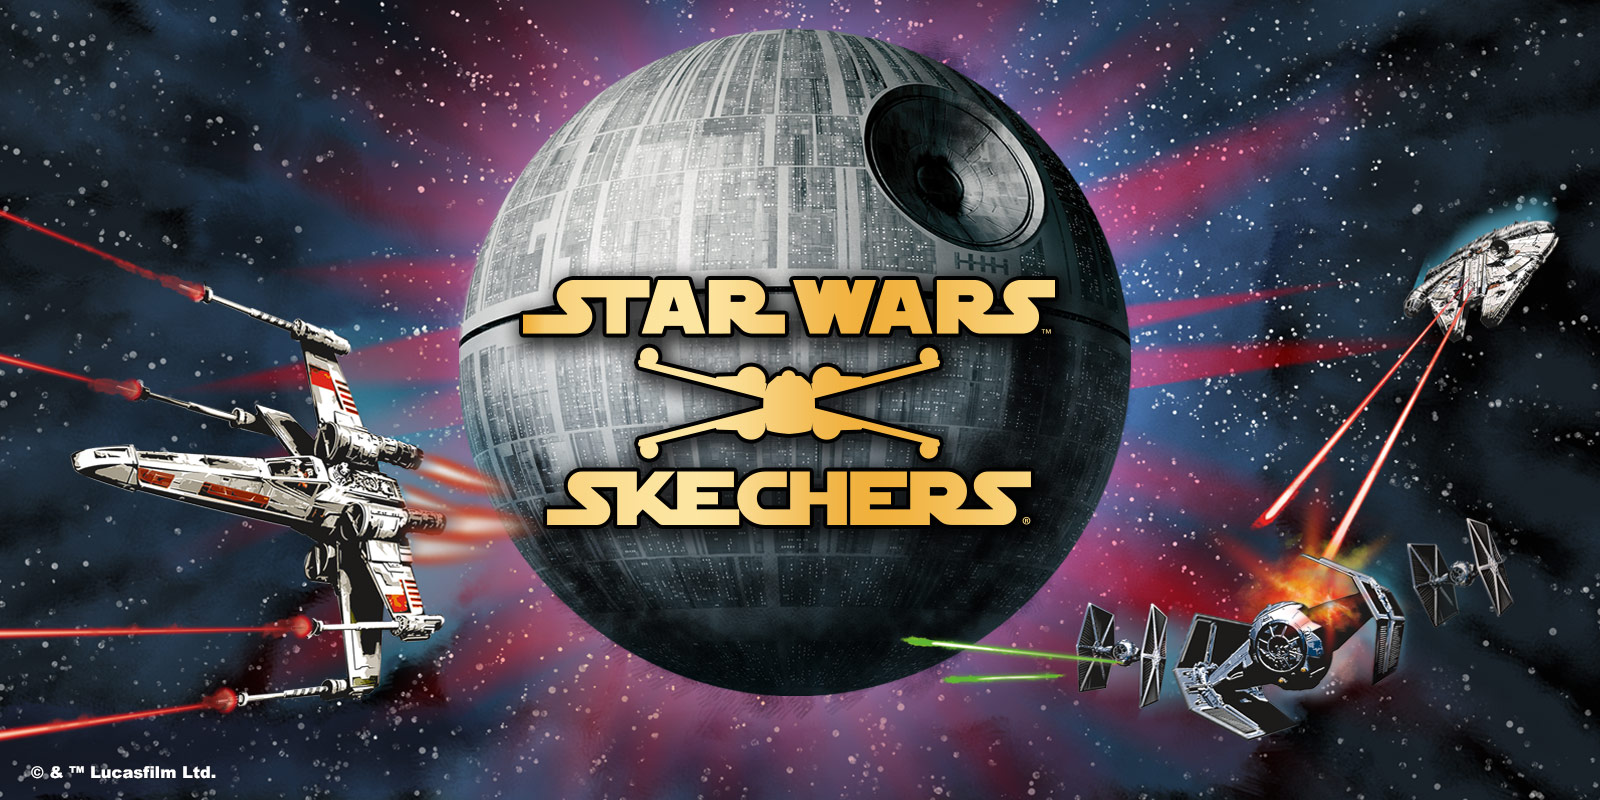 Shop for Boys Skechers Shoes on Skechers.com including Star Wars shoes and Light Up shoes